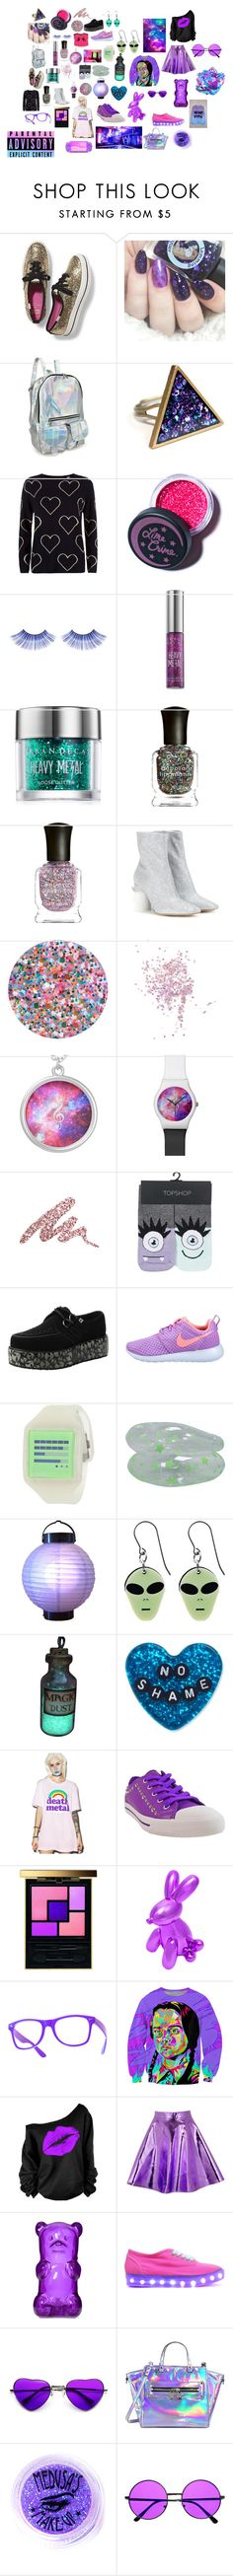 """""""Untitled #548"""" by primawanna ❤ liked on Polyvore featuring Keds, Chinti and Parker, Lime Crime, Urban Decay, Deborah Lippmann, Maison Margiela, Topshop, NIKE, Nooka and Sourpuss"""